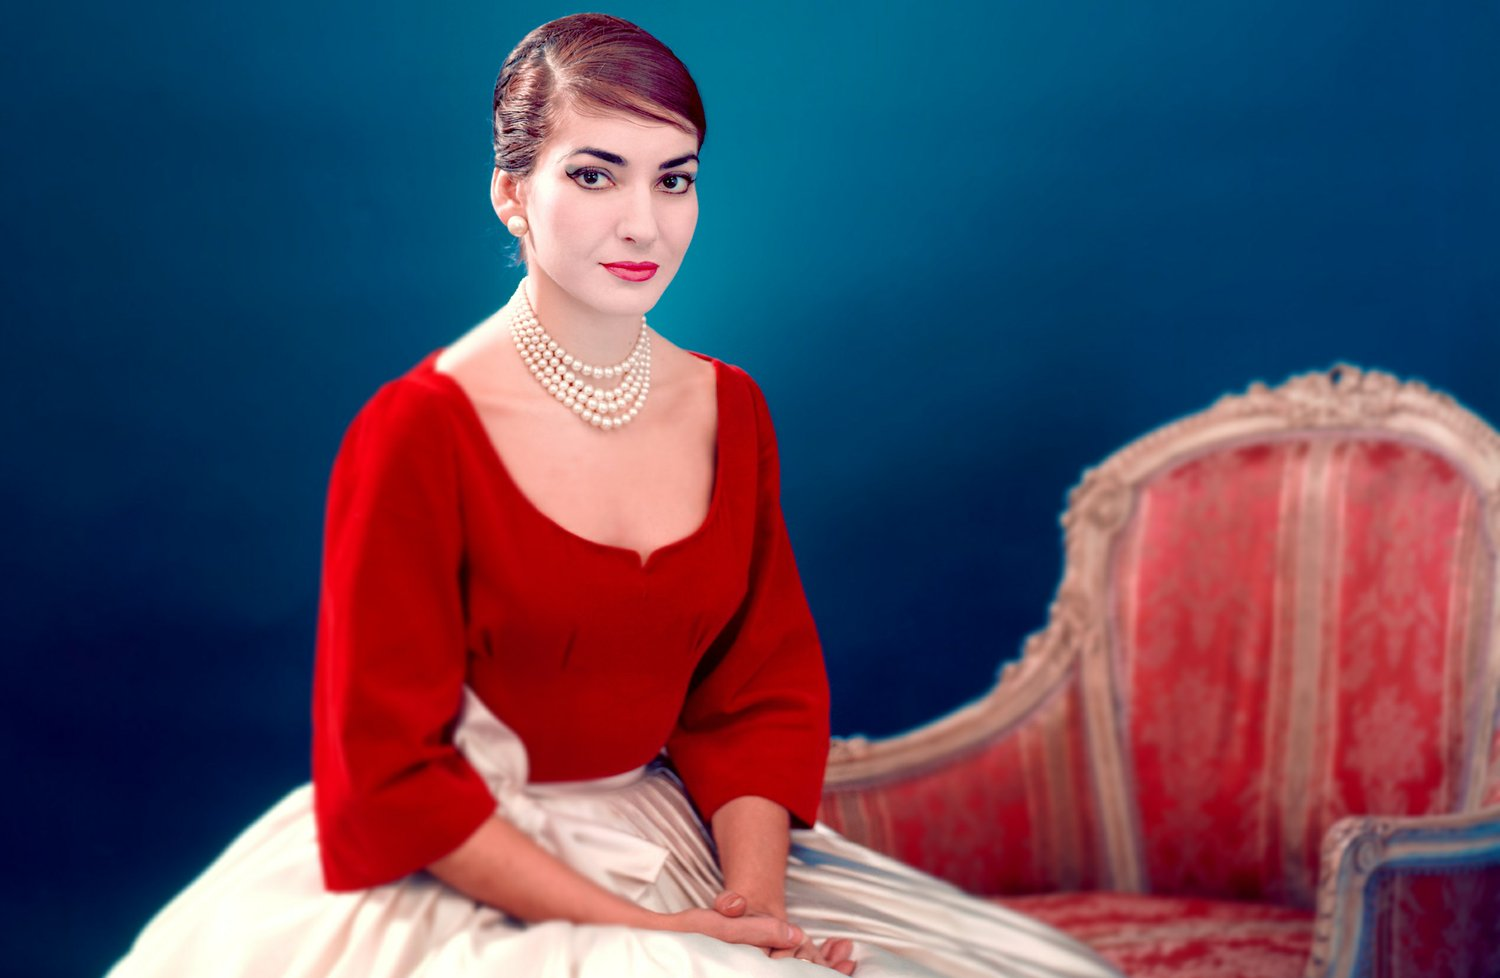 Film Review: Maria by Callas (France, 2017) is a rich documentary